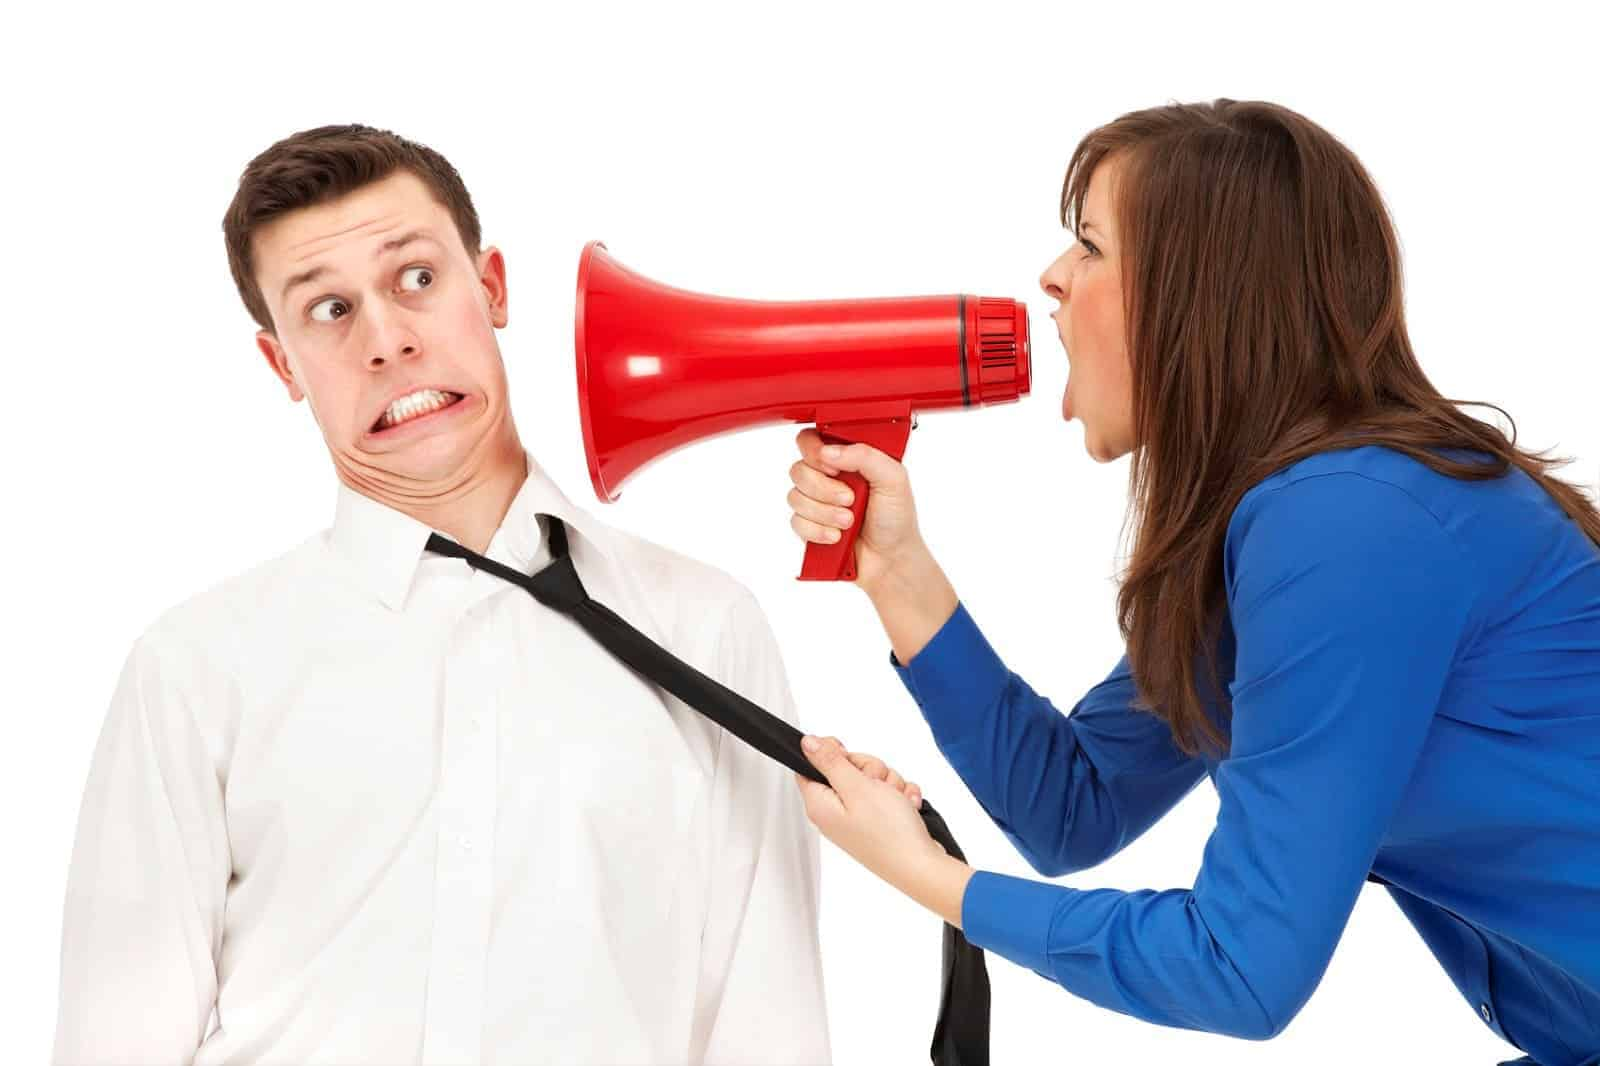 Office Queen Bees and How to Cope With Office Bullying